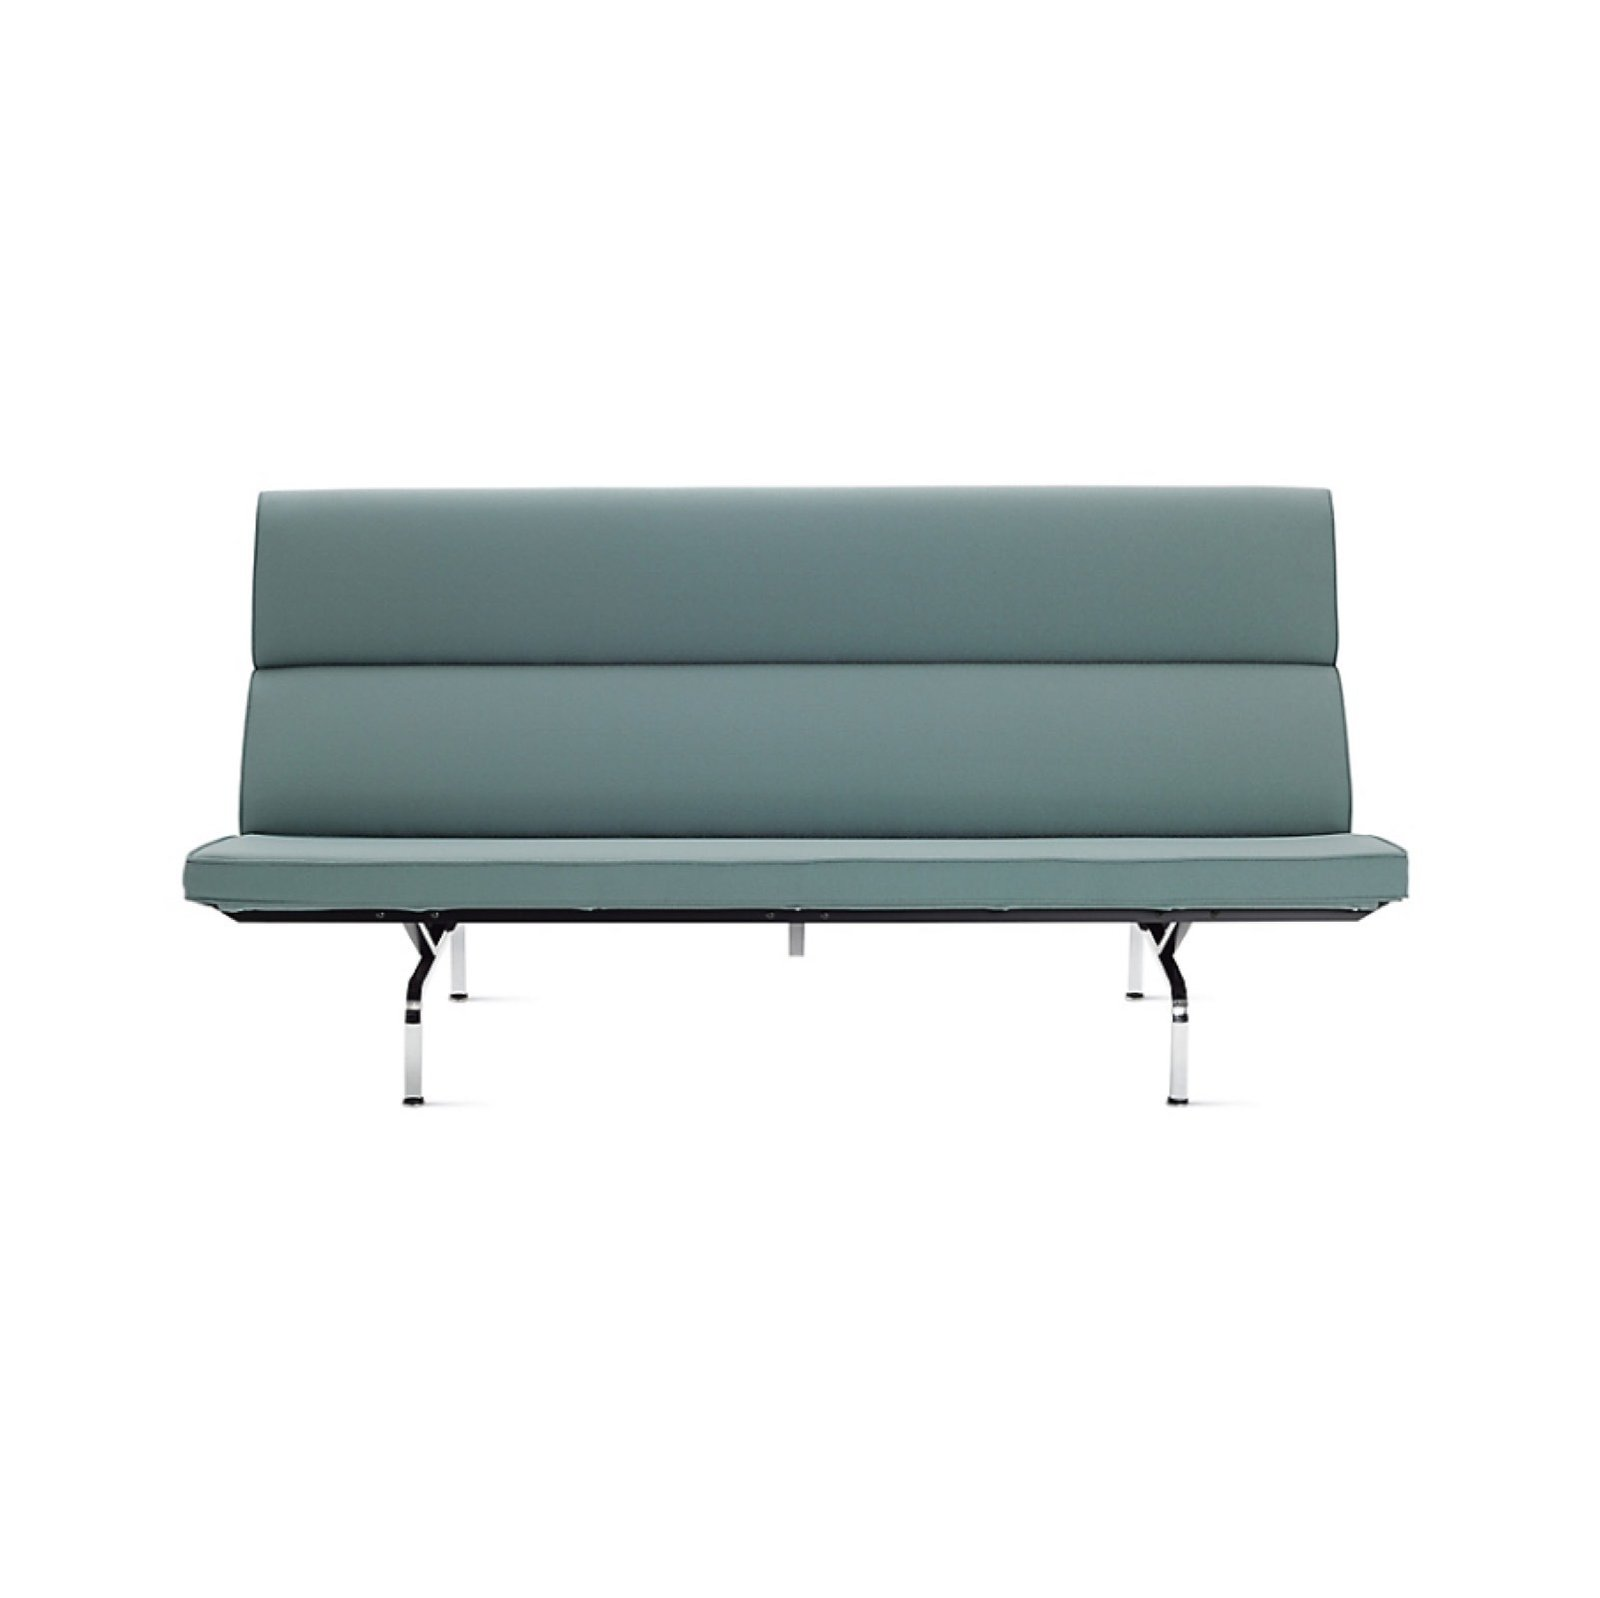 Discover The Best Muji Compact Sofa Html Products On Dwell